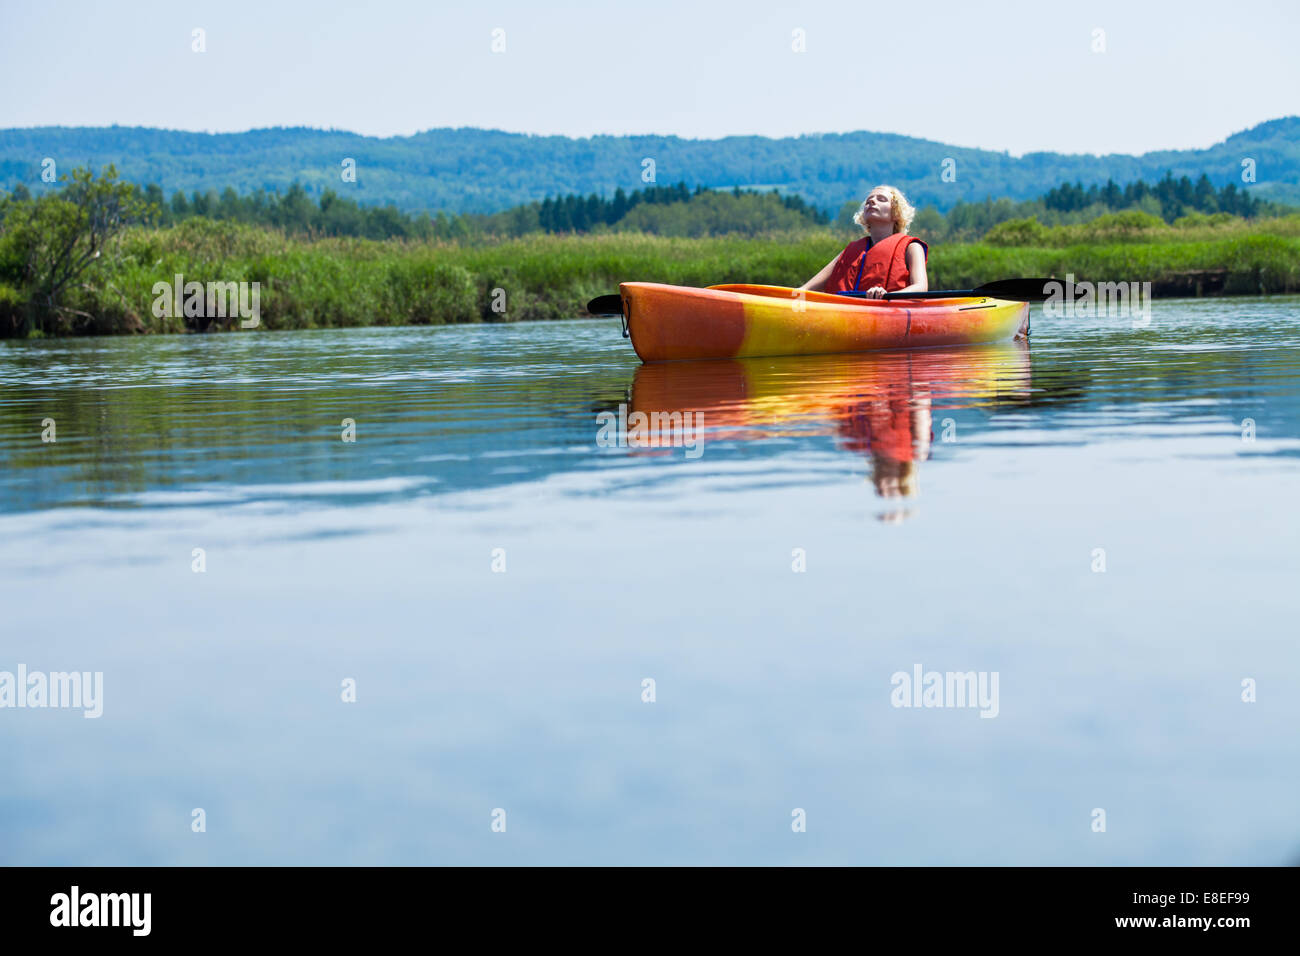 Young Woman Relaxing on a Kayak and Enjoying the Moment of Freedom - Stock Image